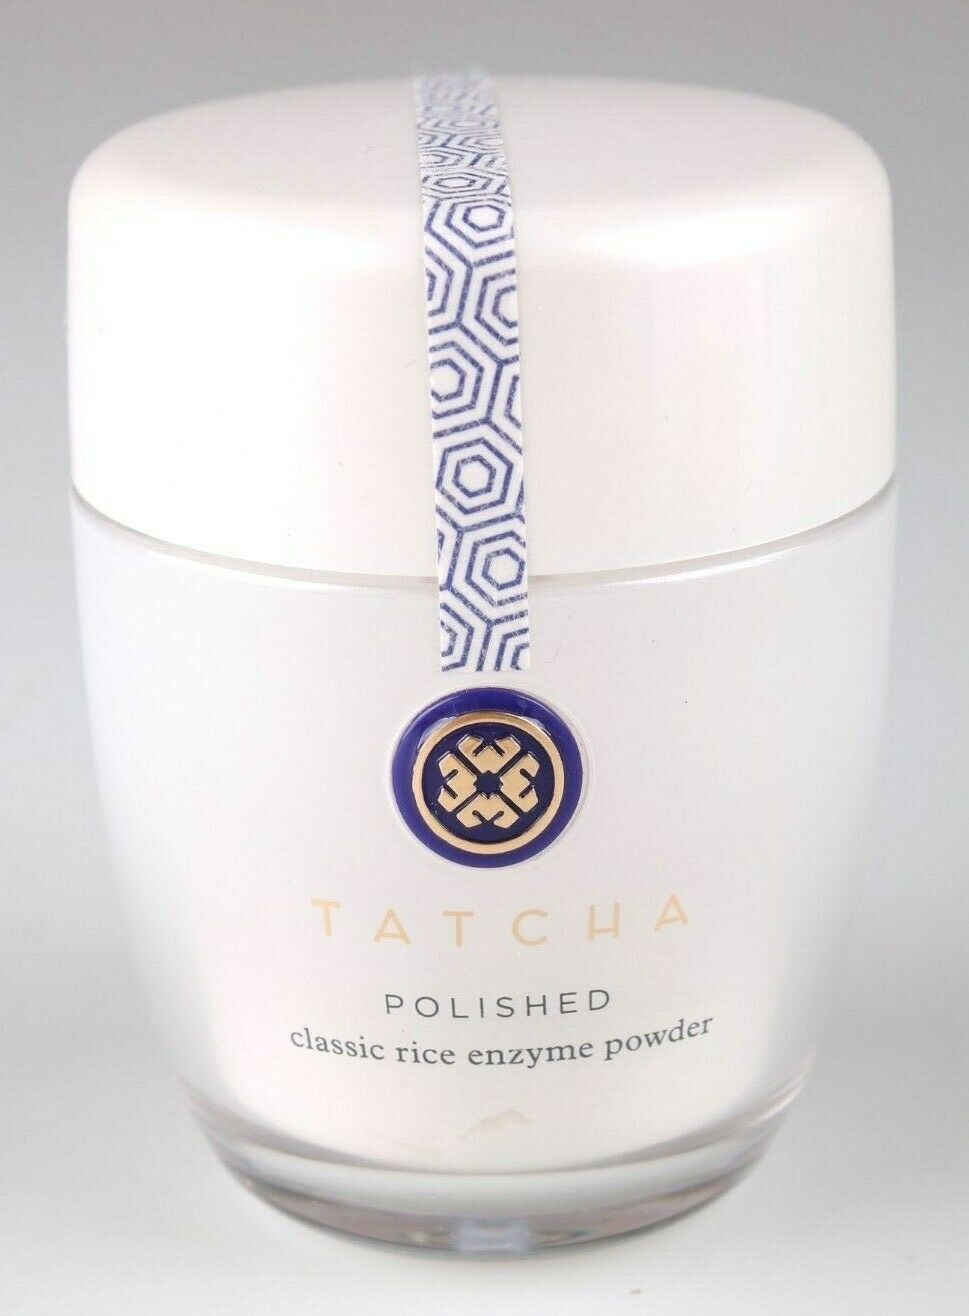 TATCHA POLISHED DEEP RICE ENZYME POWDER 60g 2.1 oz FOR OILY SKIN NEW IN BOX